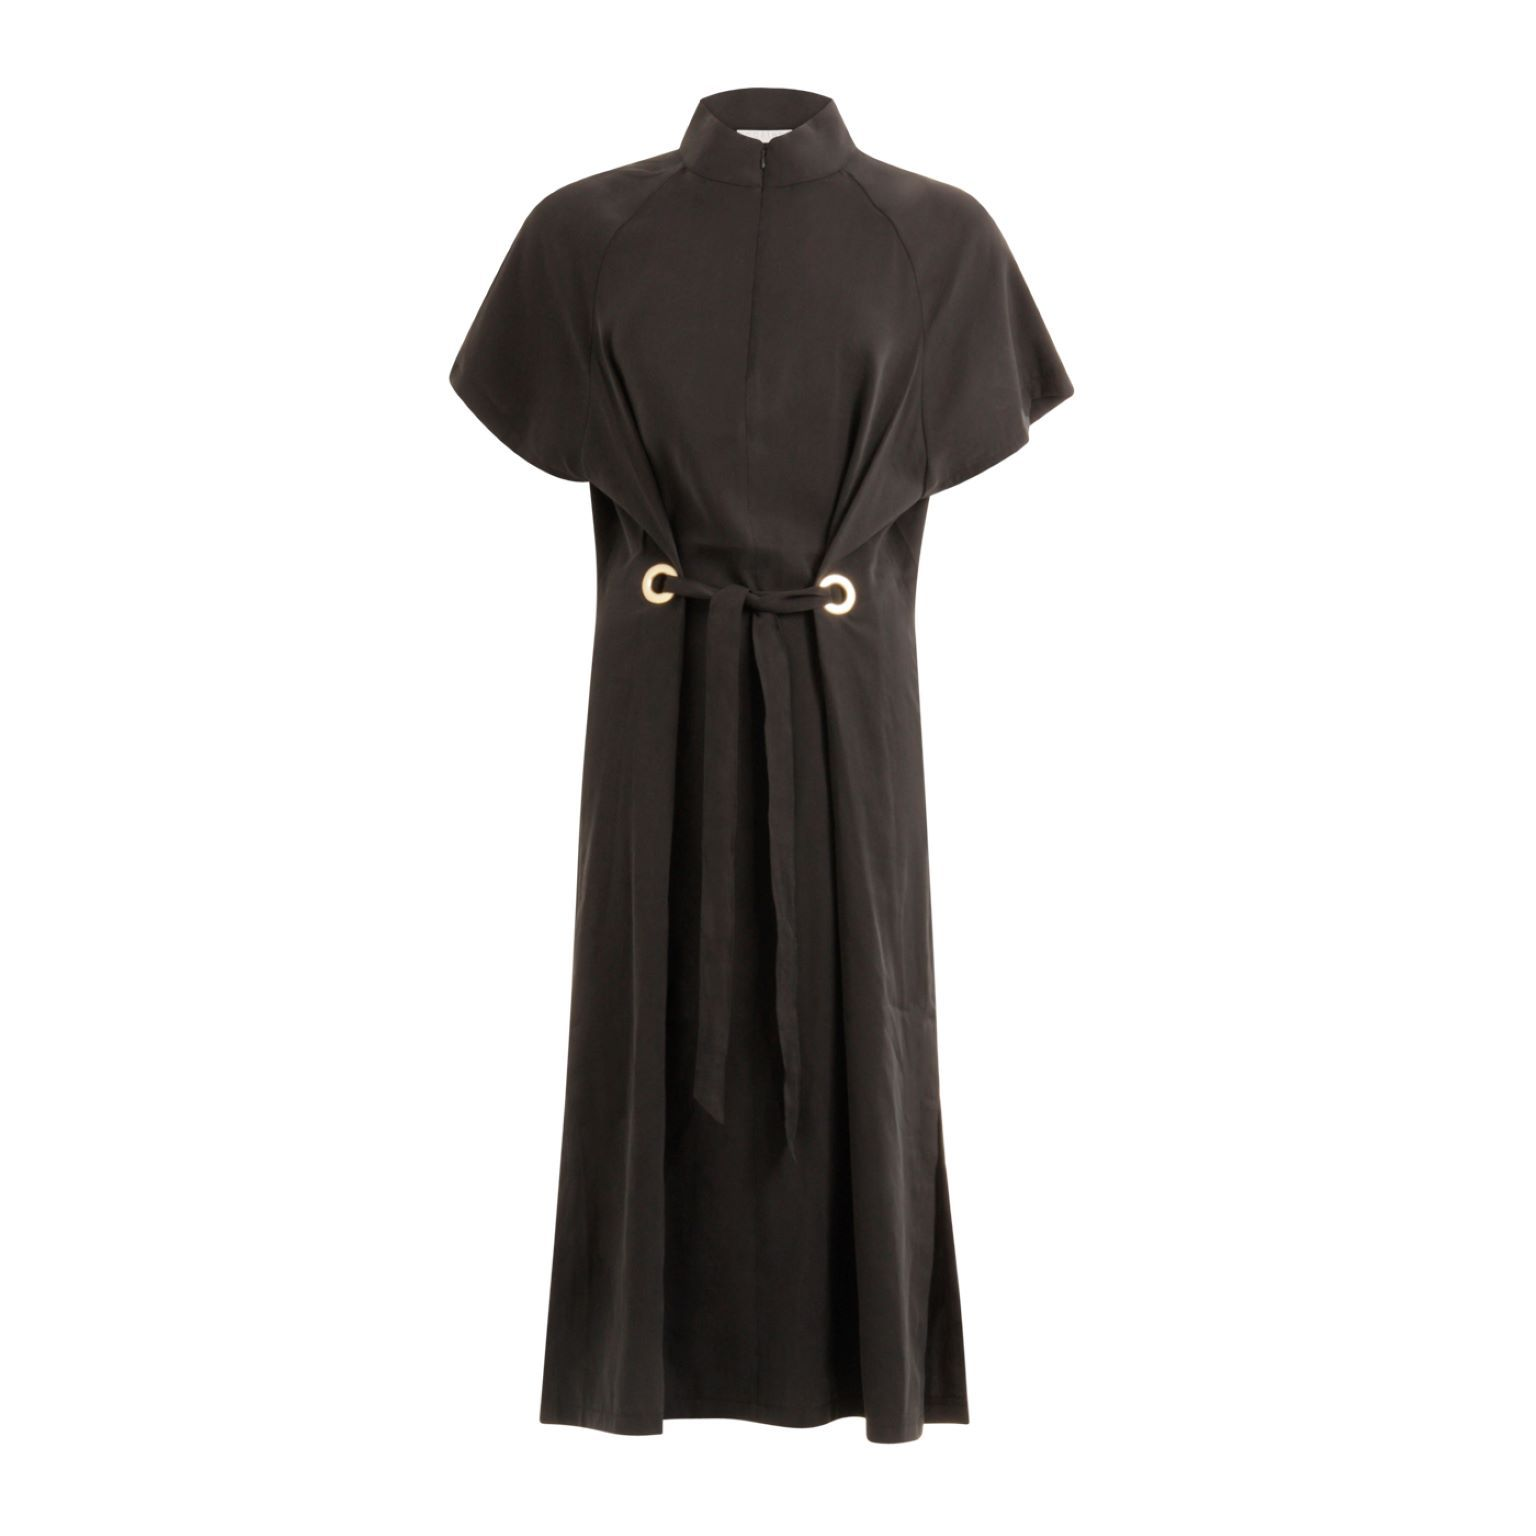 Coster Copenhagen Dress with ring detail and tieband (Black) 36